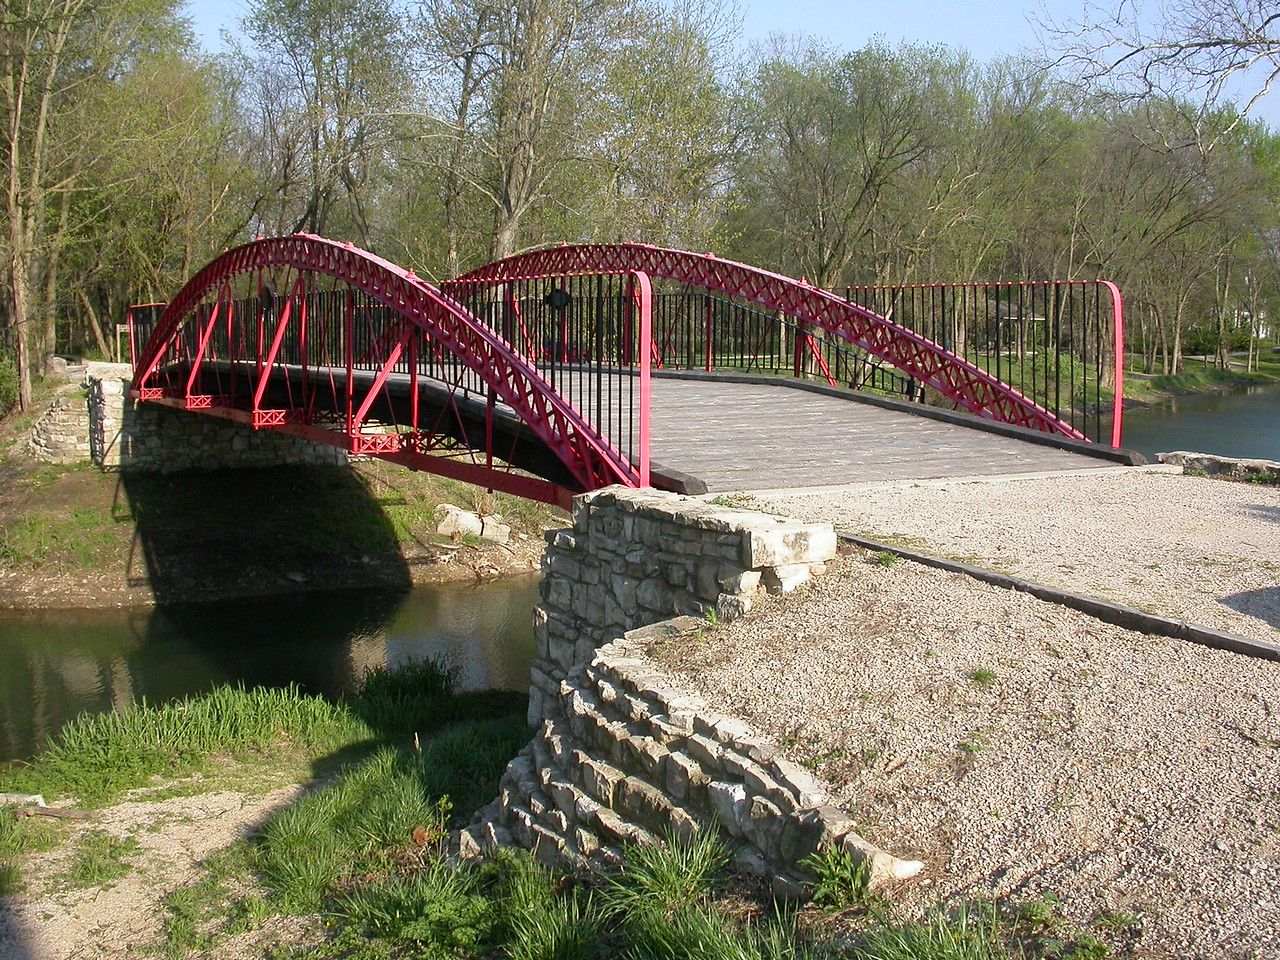 1873 Paint Creek Bridge over the Wabash and Erie Canal, Delphi, Indiana, April 2004.